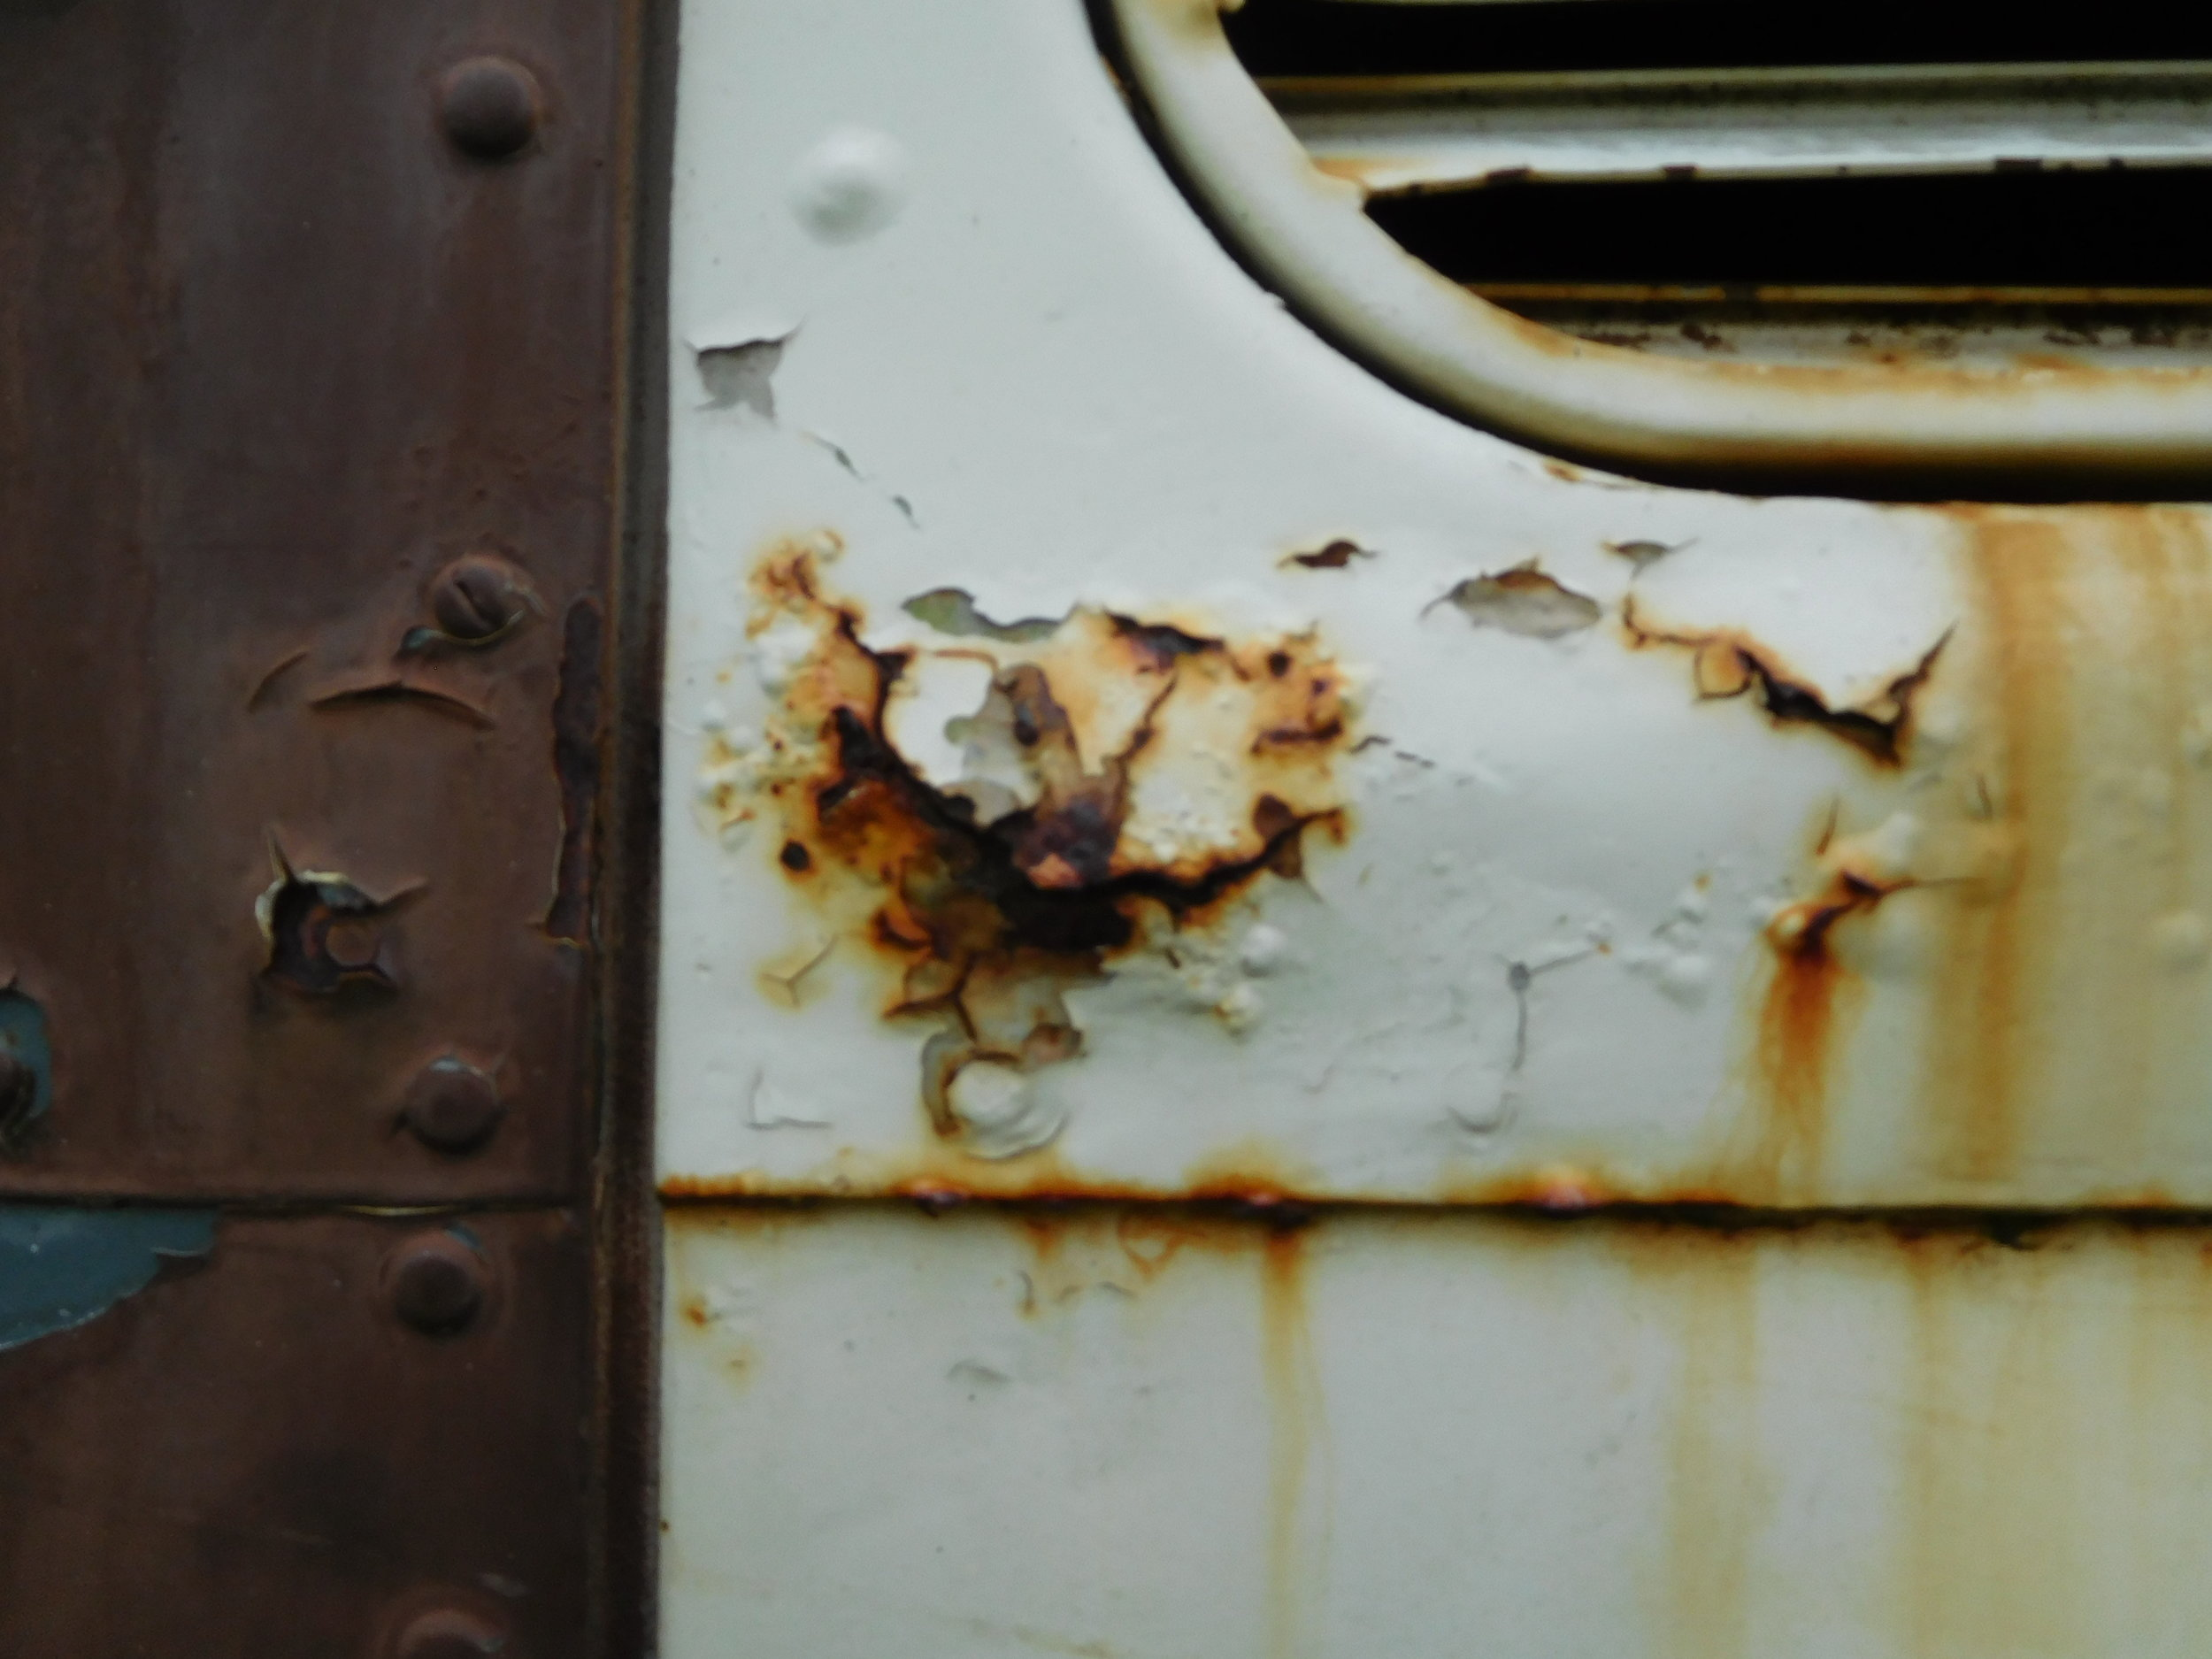 Baggage door, some places will need metal work